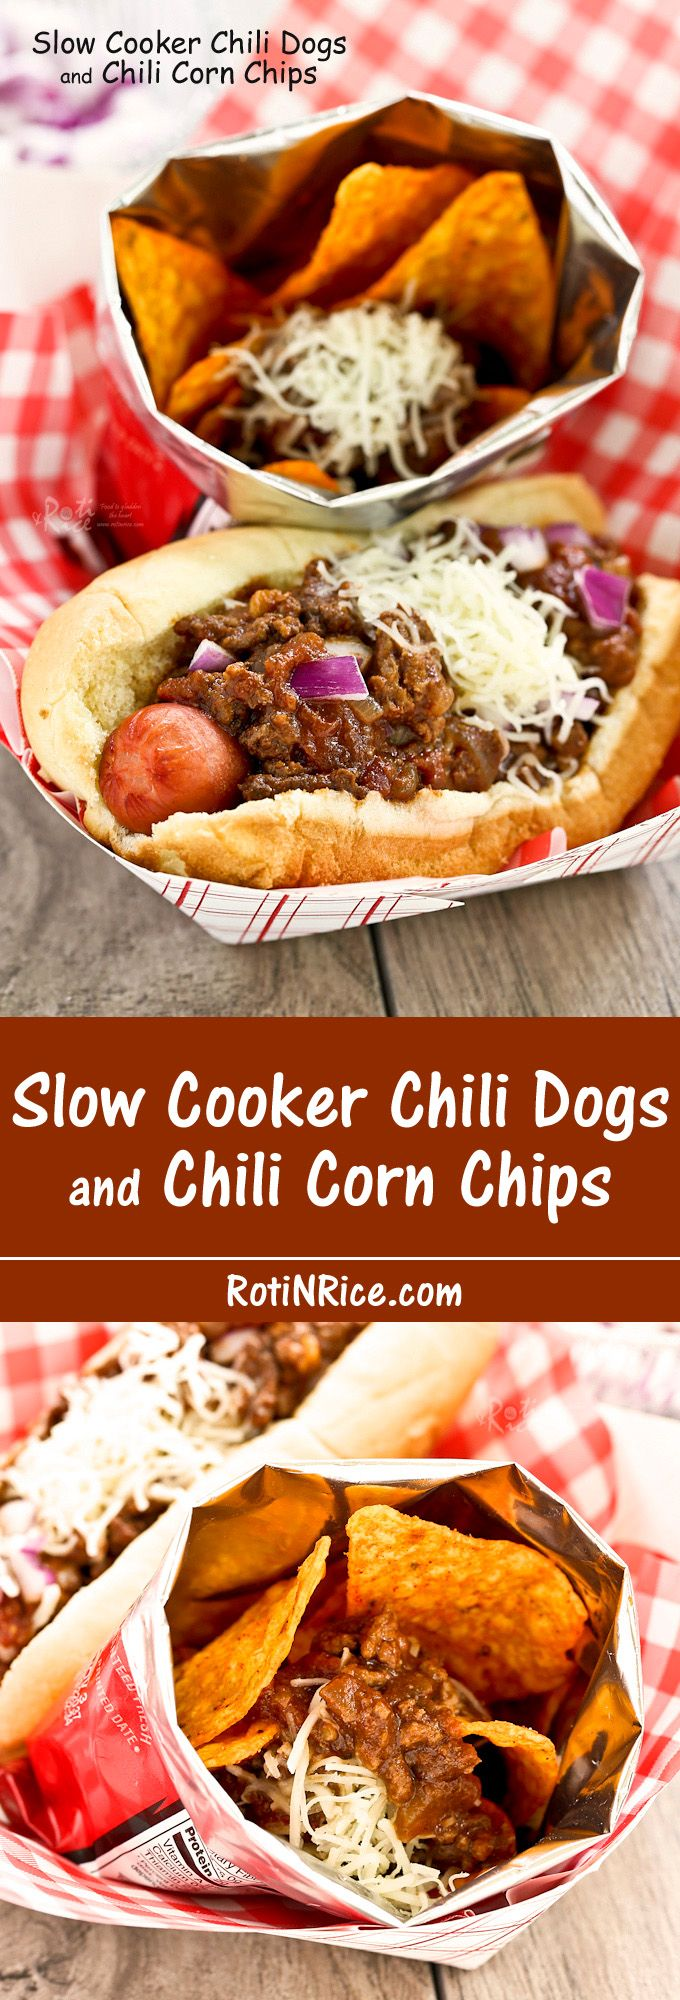 Slow Cooker Chili Dogs and Chili Corn Chips - cook once and enjoy it both ways. Perfect for a tailgate party or potluck. | RotiNRice.com